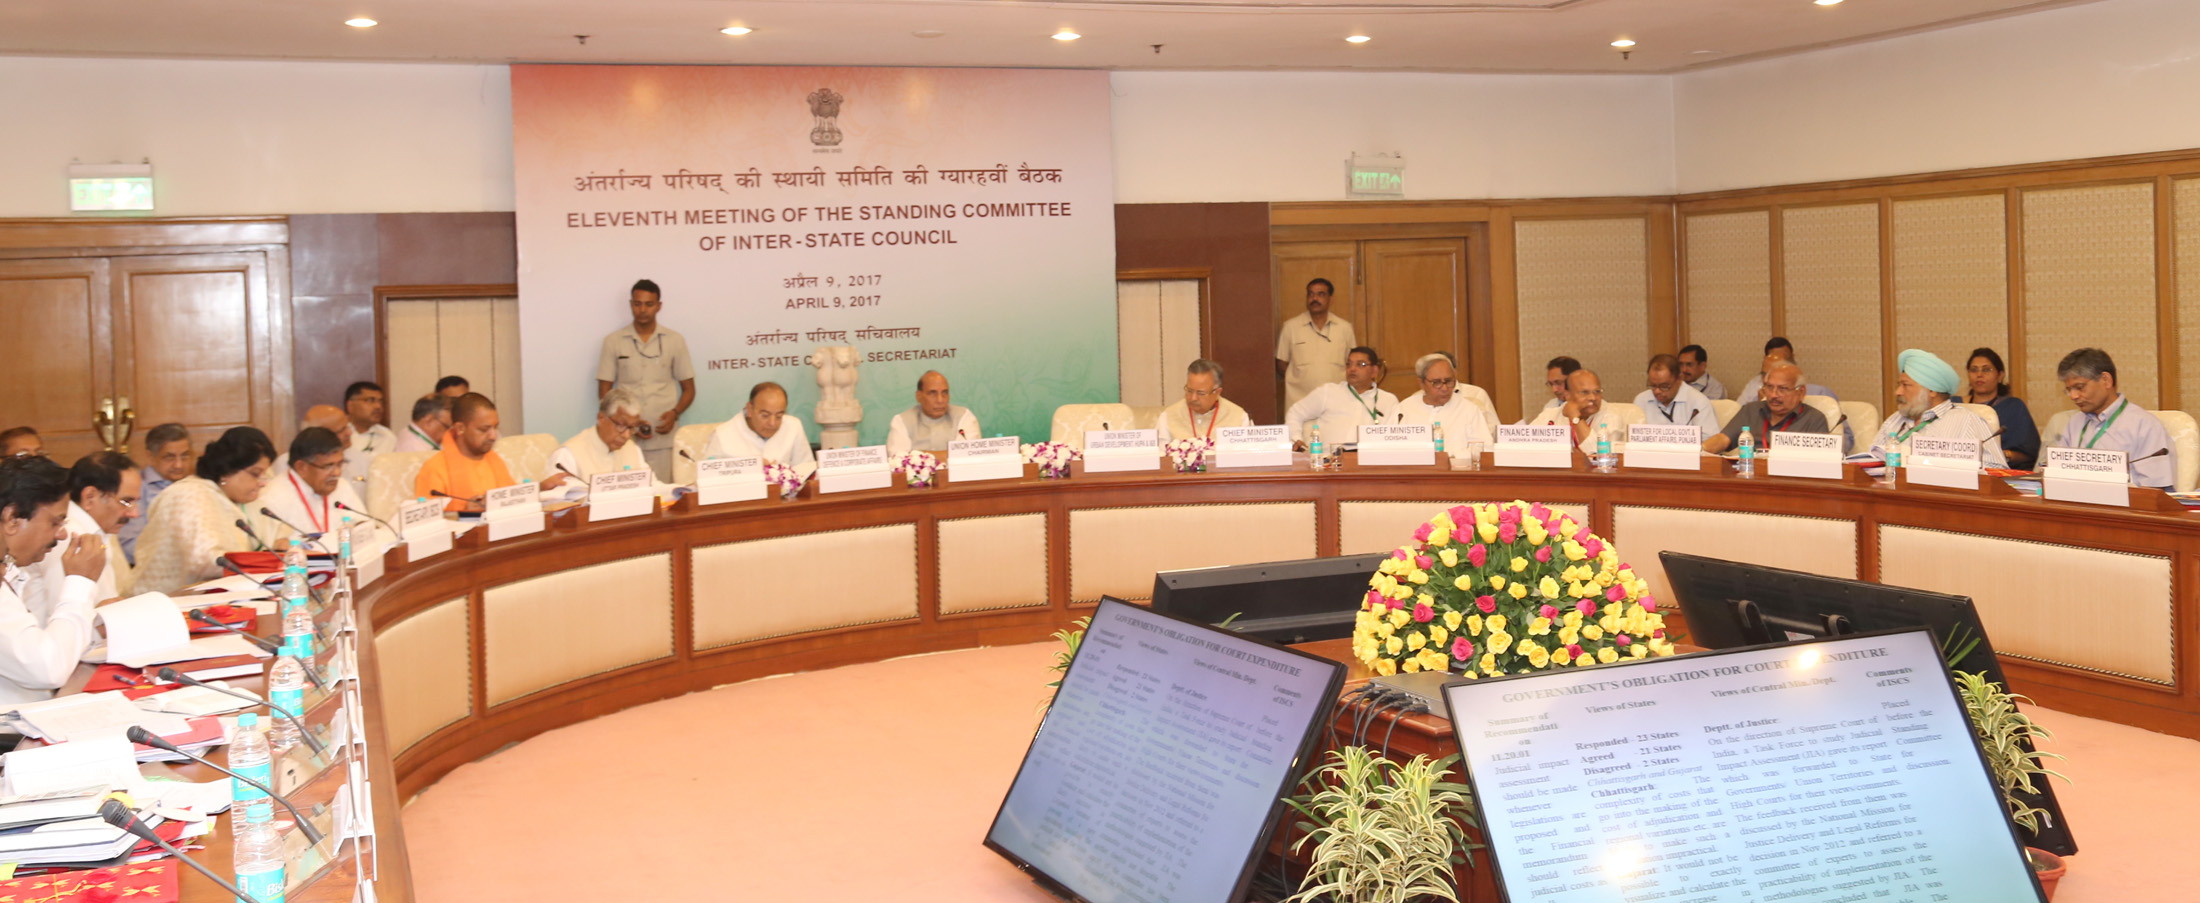 The Union Home Minister, Shri Rajnath Singh chairing the 11th Standing Committee meeting of the Inter-State Council, in New Delhi on April 09, 2017. 	The Union Minister for Finance, Corporate Affairs and Defence, Shri Arun Jaitley, the Chief Minister of Chhattisgarh, Dr. Raman Singh, the Chief Minister of Tripura, Shri Manik Sarkar, the Chief Minister of Odisha, Shri Naveen Patnaik, the Chief Minister of Uttar Pradesh, Yogi Adityanath and other dignitaries are also seen.